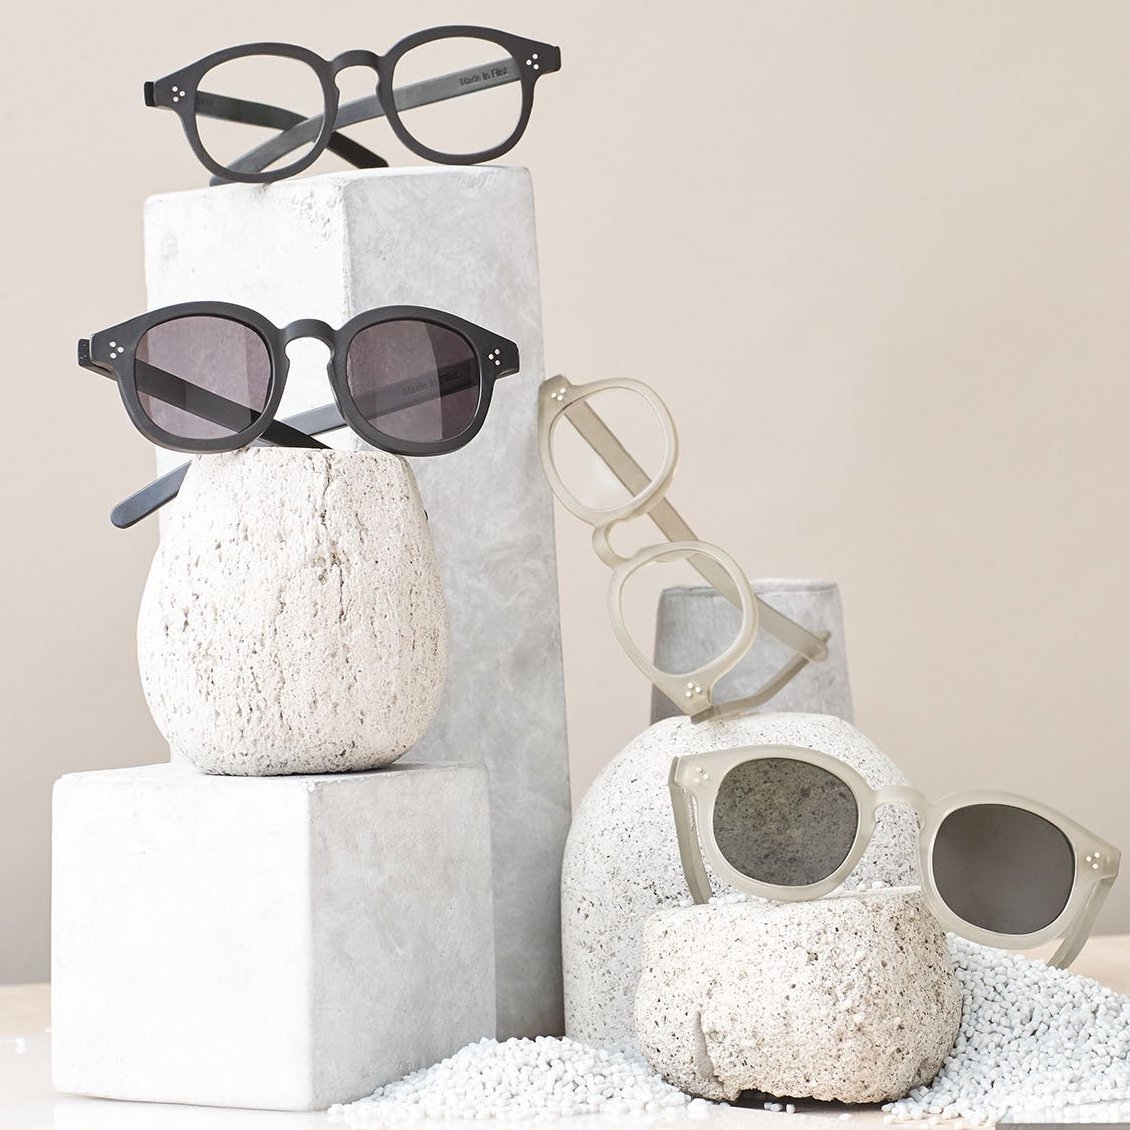 Genusee Glasses & Sunglasses Made From Recycled Plastic